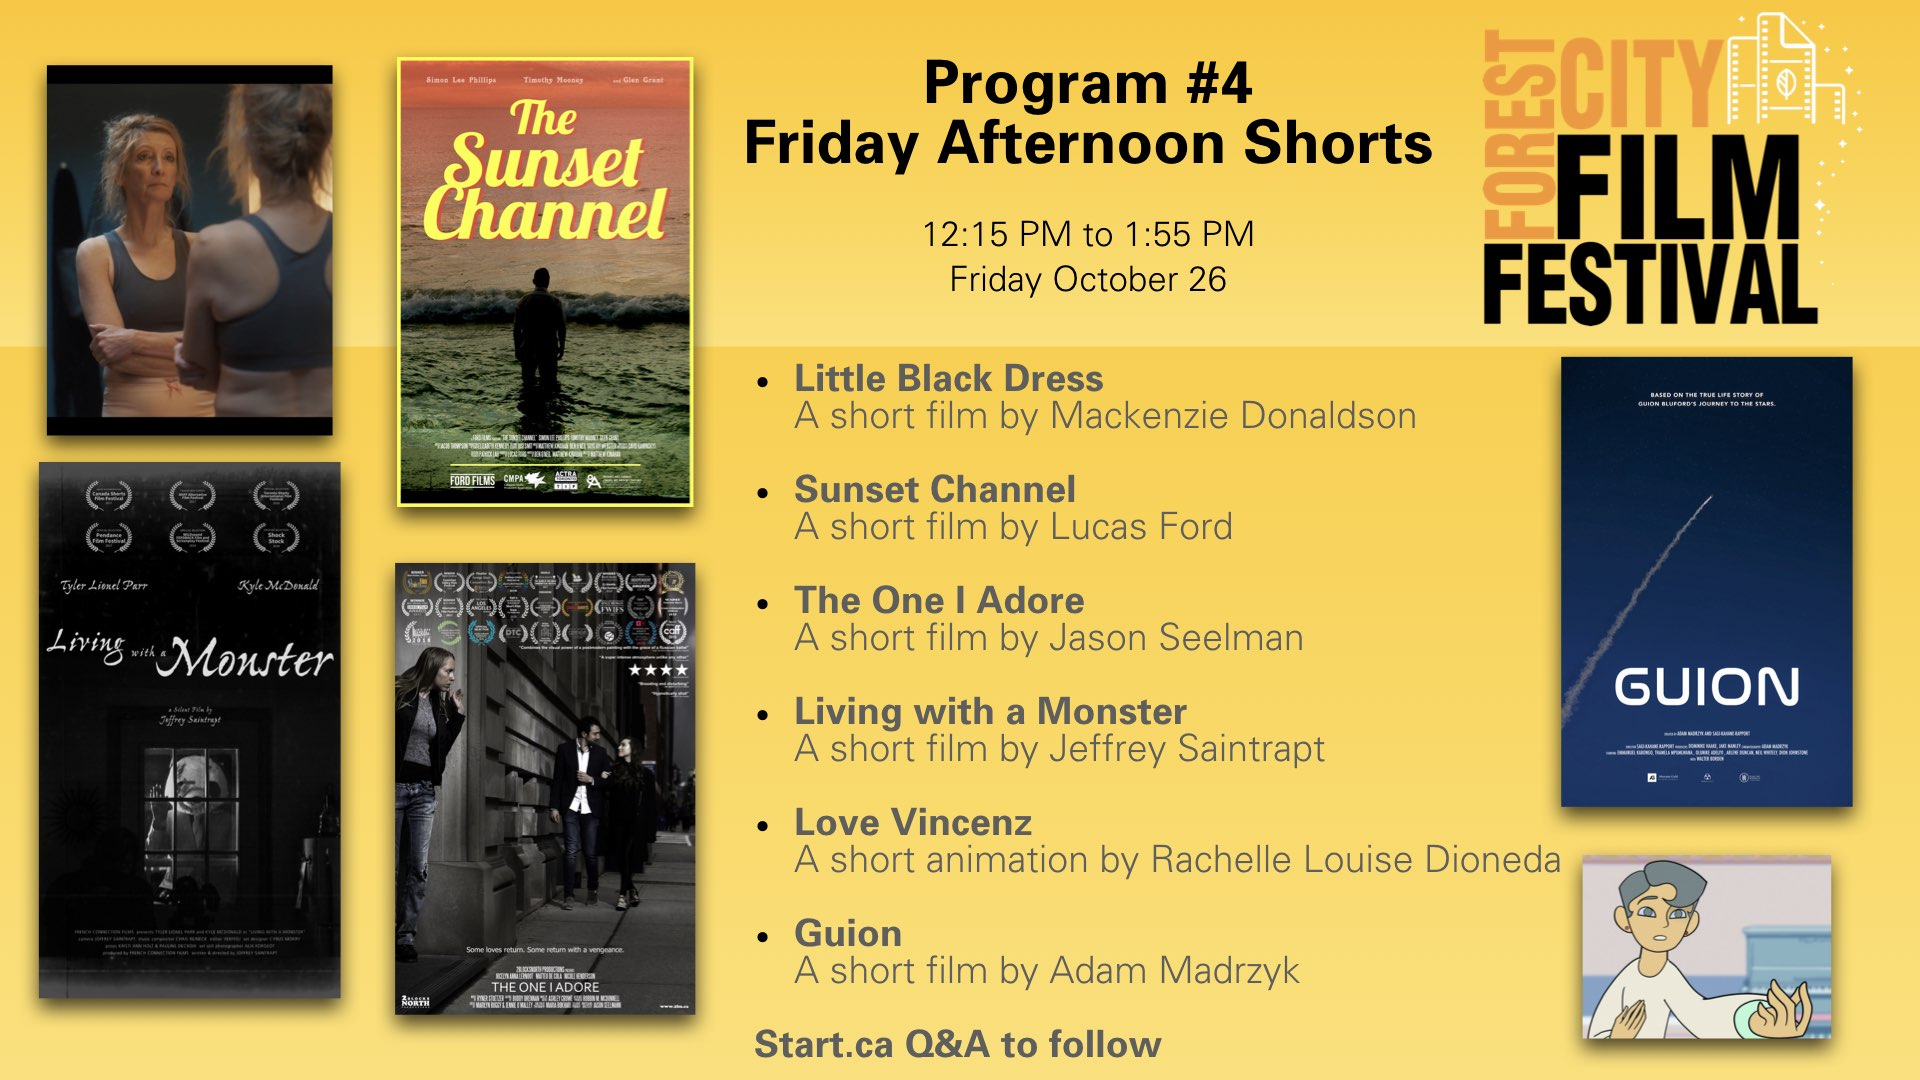 Forest City Film Festival 2018 - Friday Shorts - Program #4